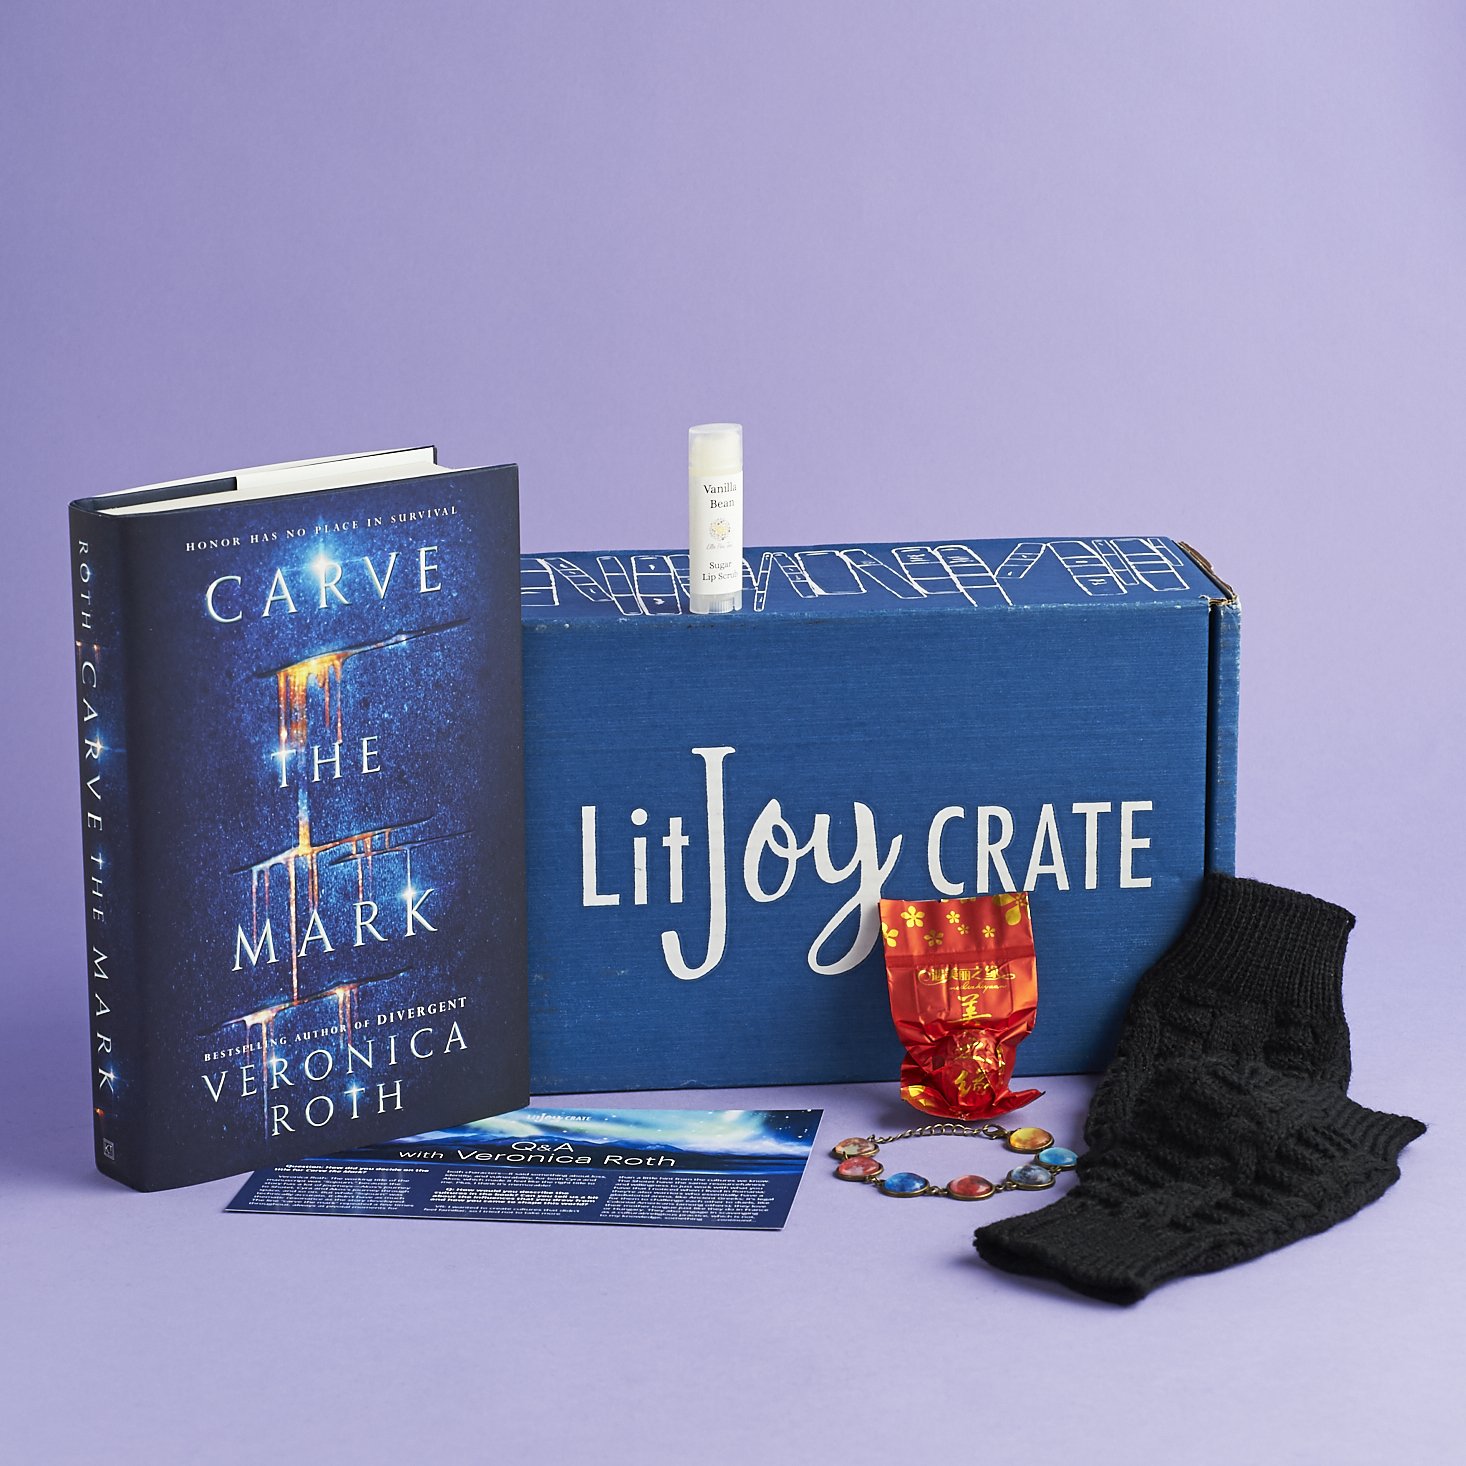 Image result for litjoy crate